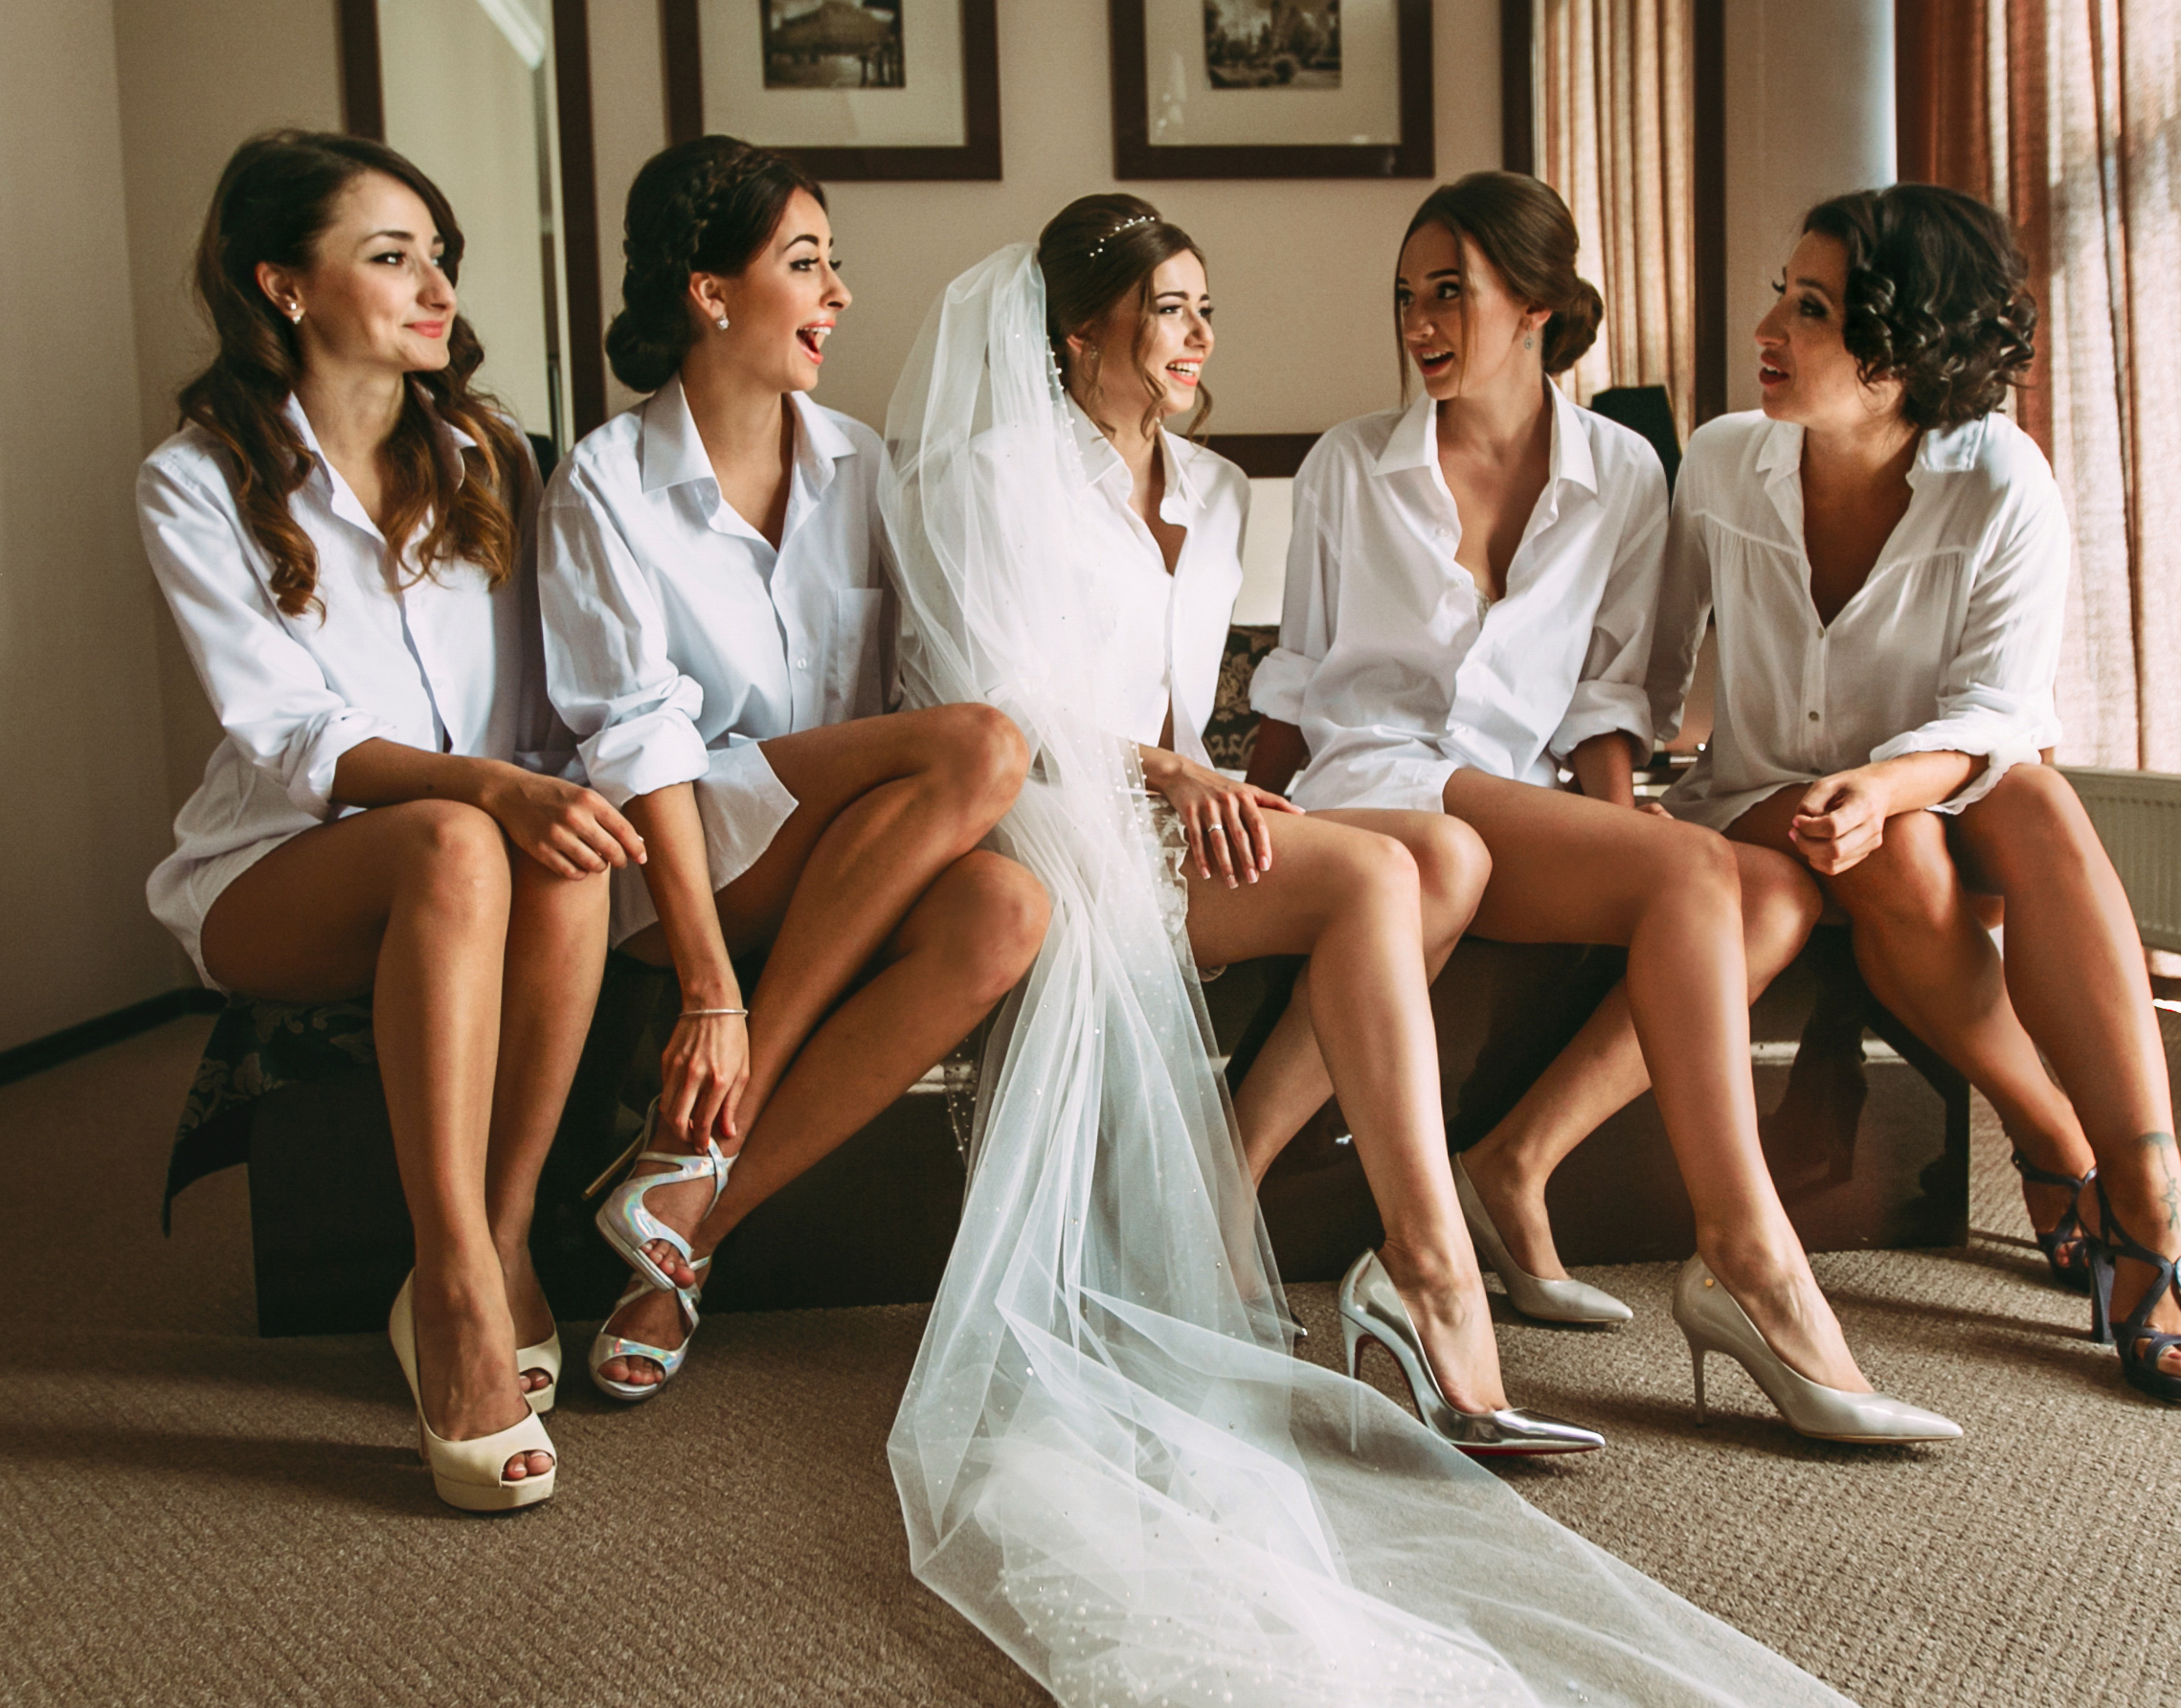 Spa Parties & Botox Parties at Lorena Luca in Raleigh